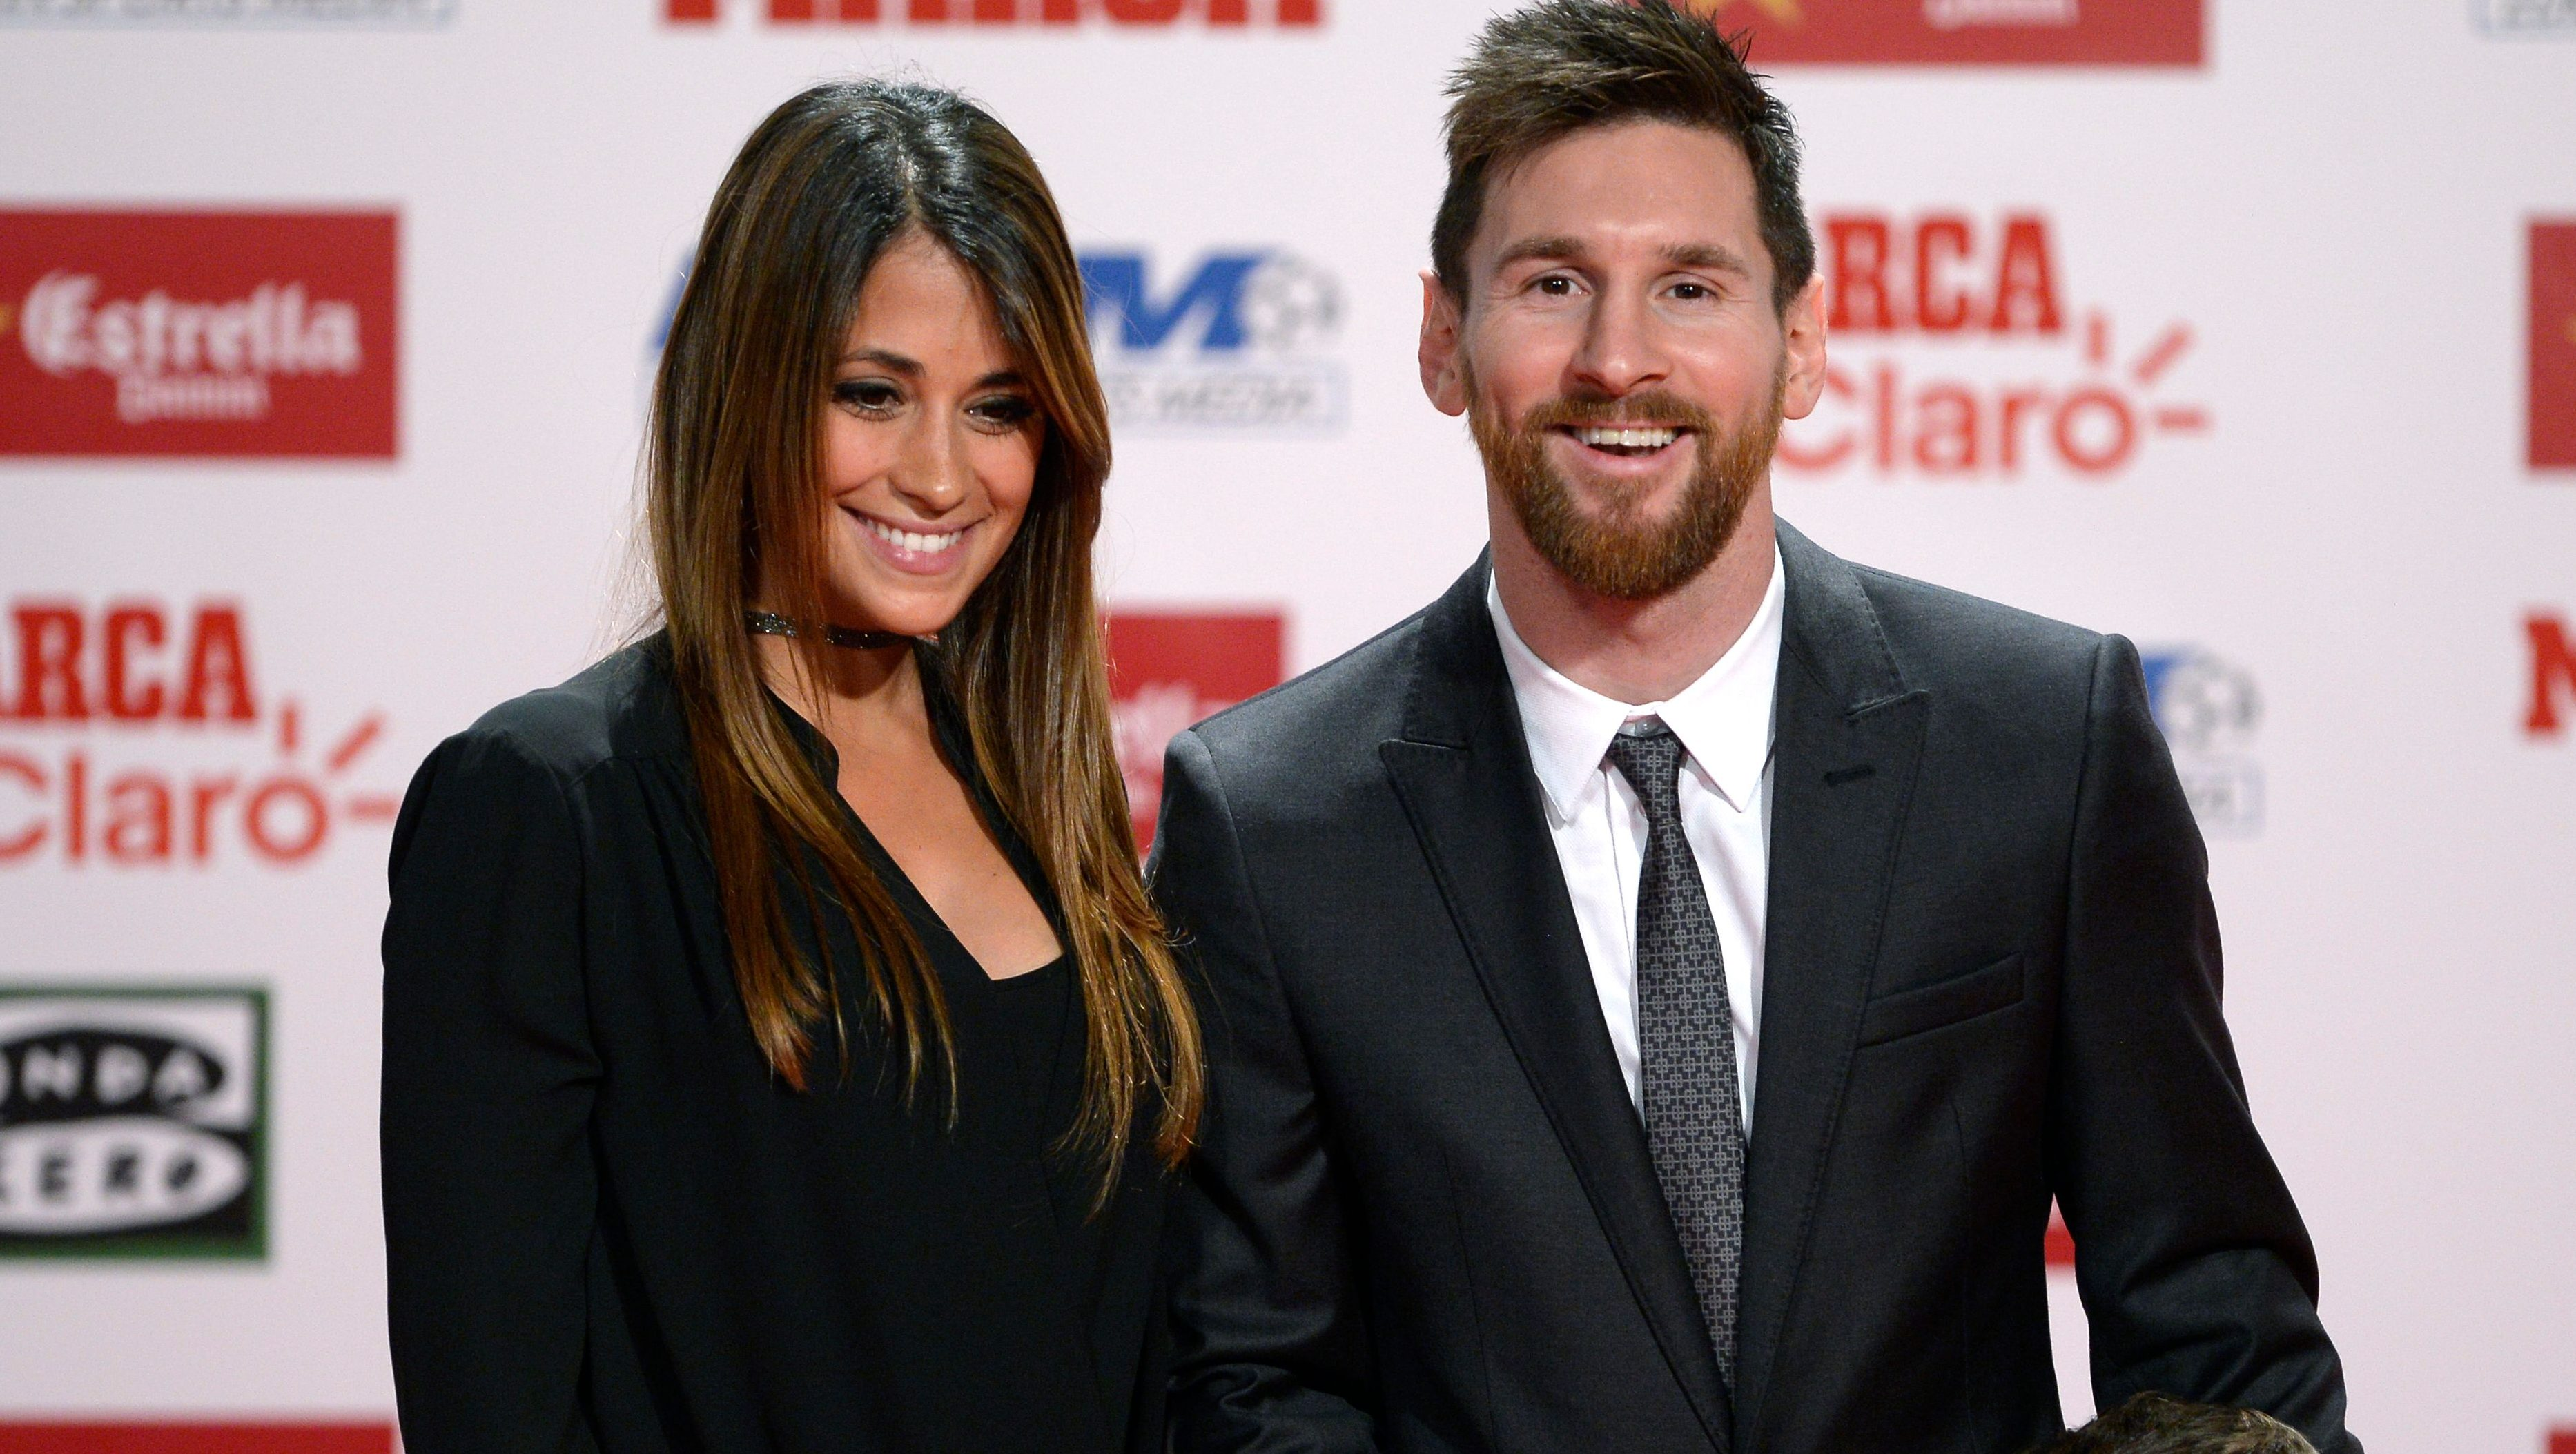 Messi S Wife Kids 5 Fast Facts You Need To Know Heavy Com